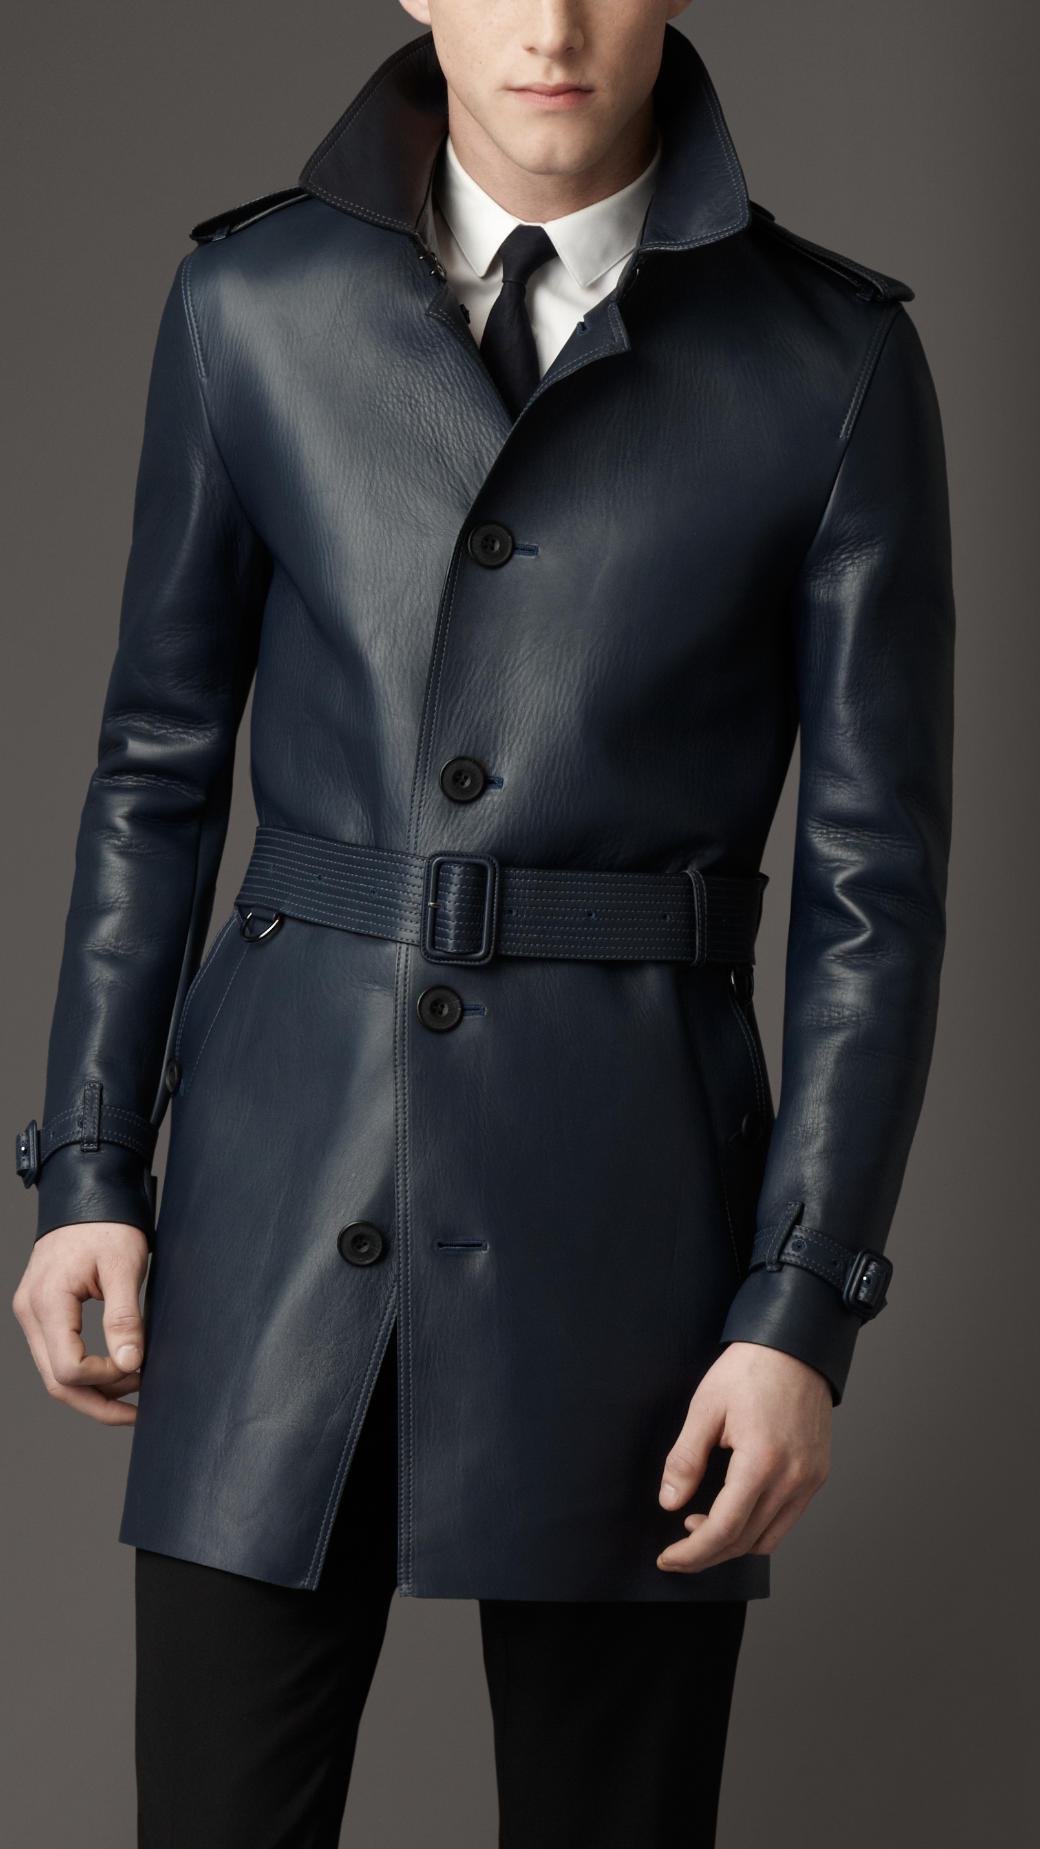 burberry midlength lambskin leather trench coat in blue for men lyst. Black Bedroom Furniture Sets. Home Design Ideas